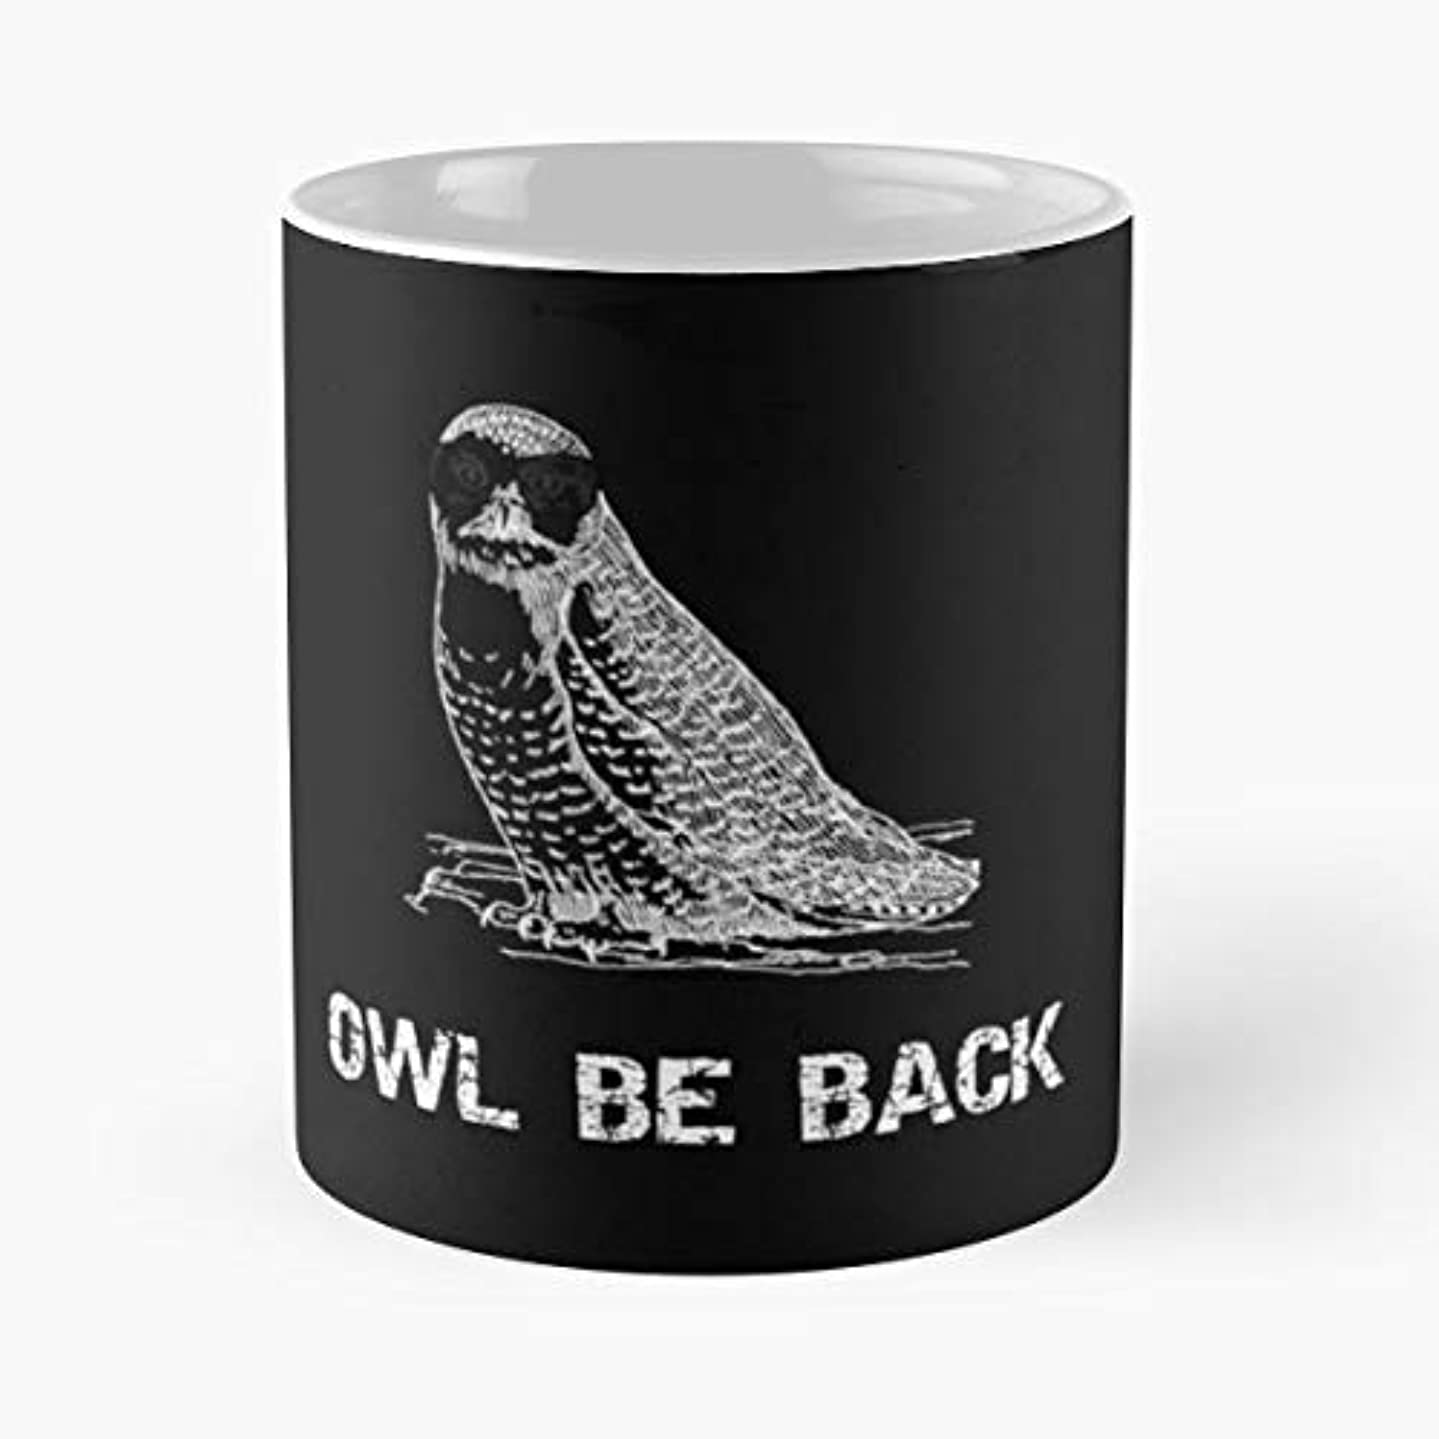 Owl Barn Snowy White - 11 Oz Coffee Mugs Ceramic The Best Gift For Holidays, Item Use Daily